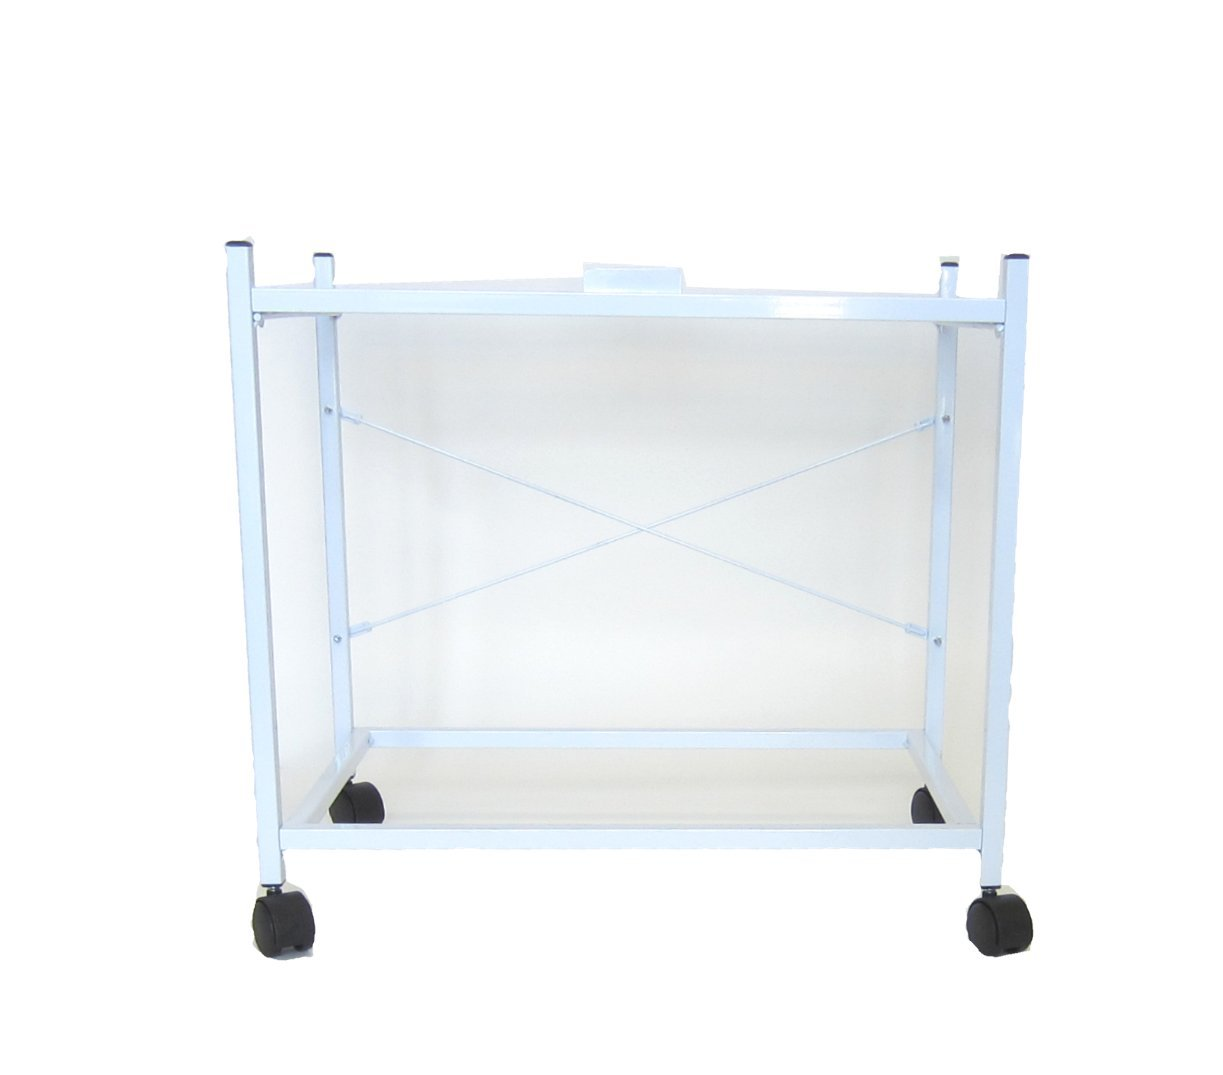 YML 2-Shelf Stand for 2424 and 2434 White YML GROUP INC 4124WHT